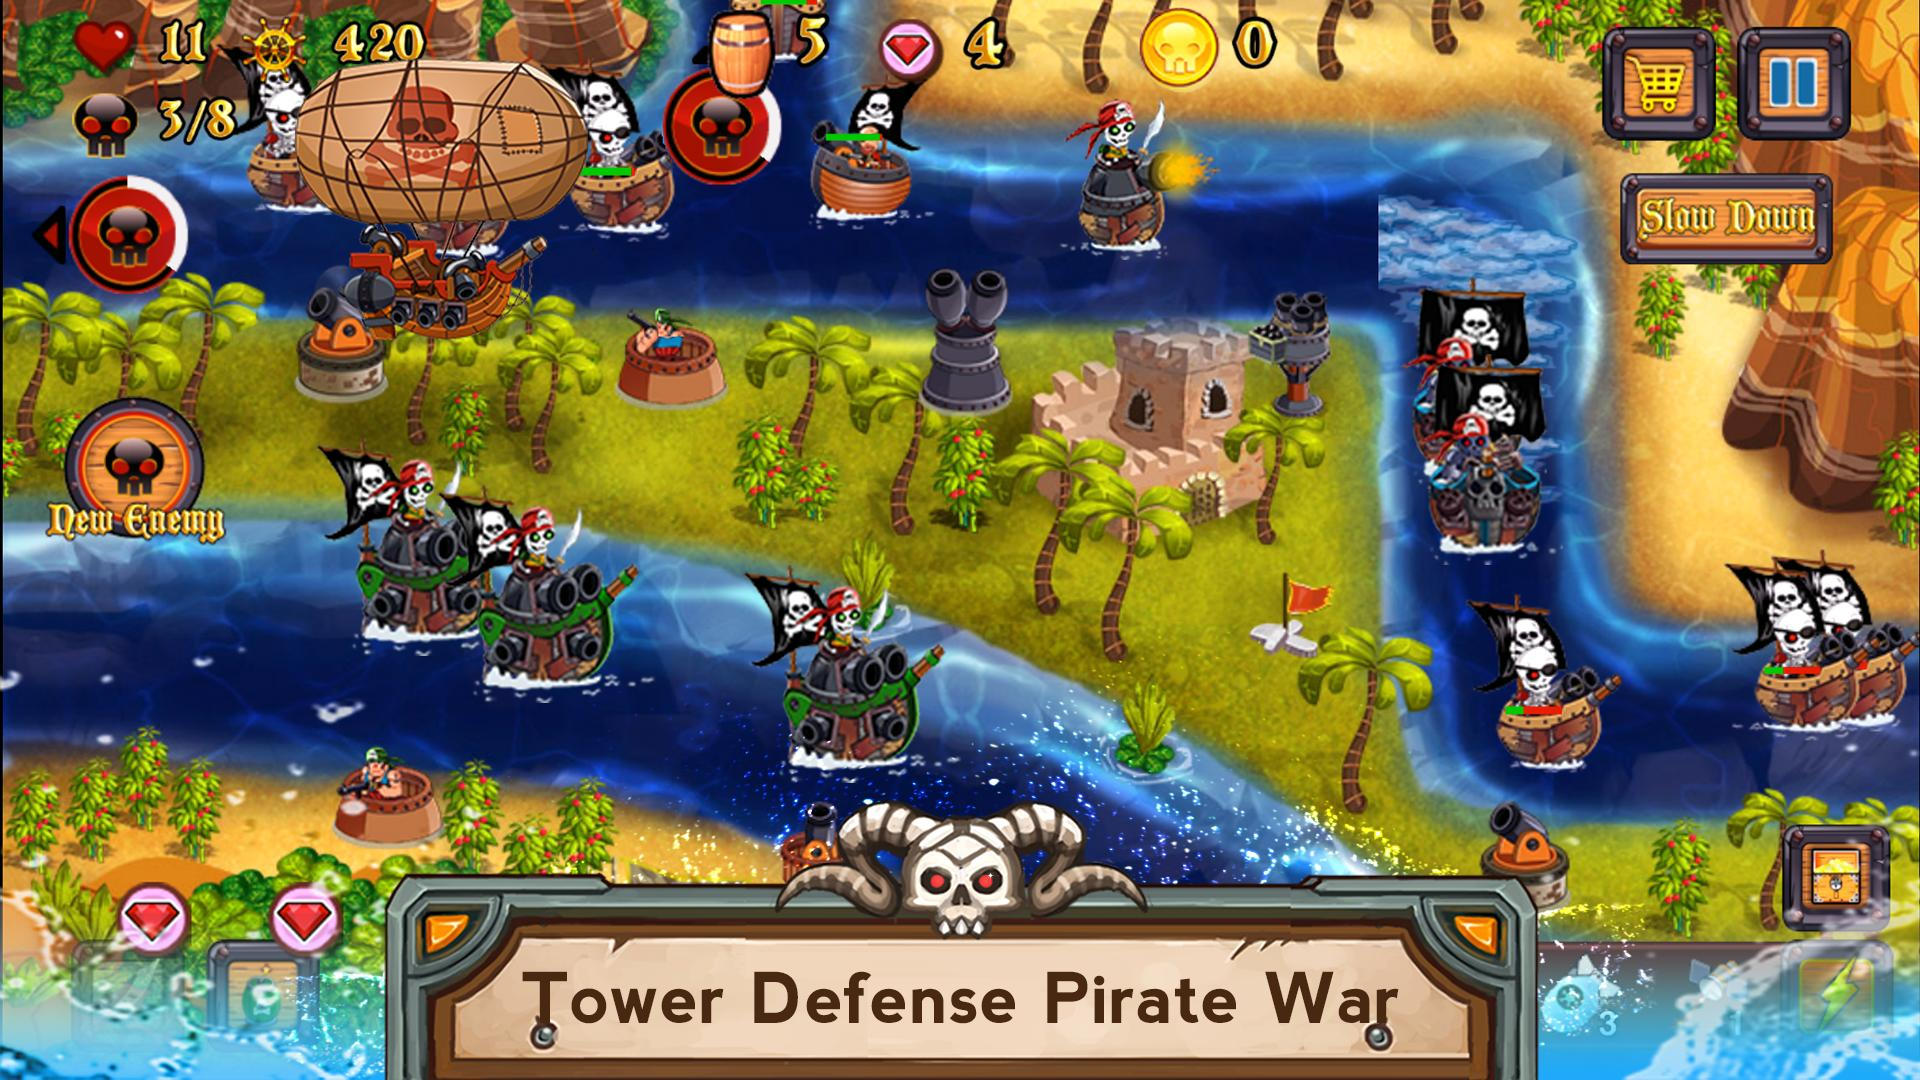 Tower Defense Pirates TD for Android - APK Download